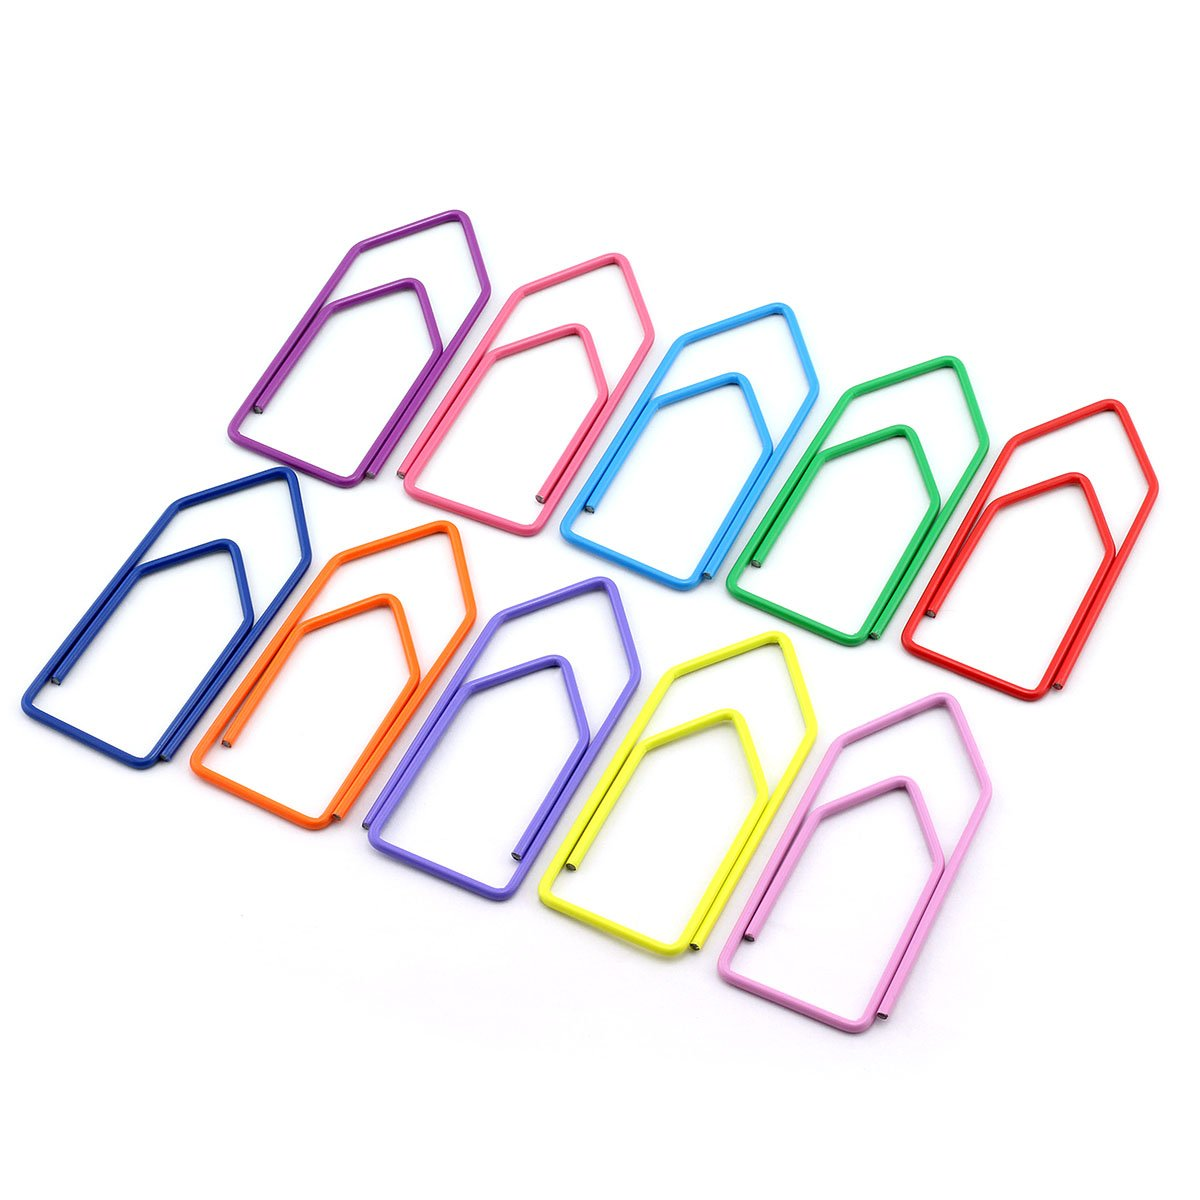 RuiLing 30-Pack Paper Clips,Multicolor Creative Shape 2.7 inch Length Great for Paper Clip Collectors Bookmark Document Holder Office School